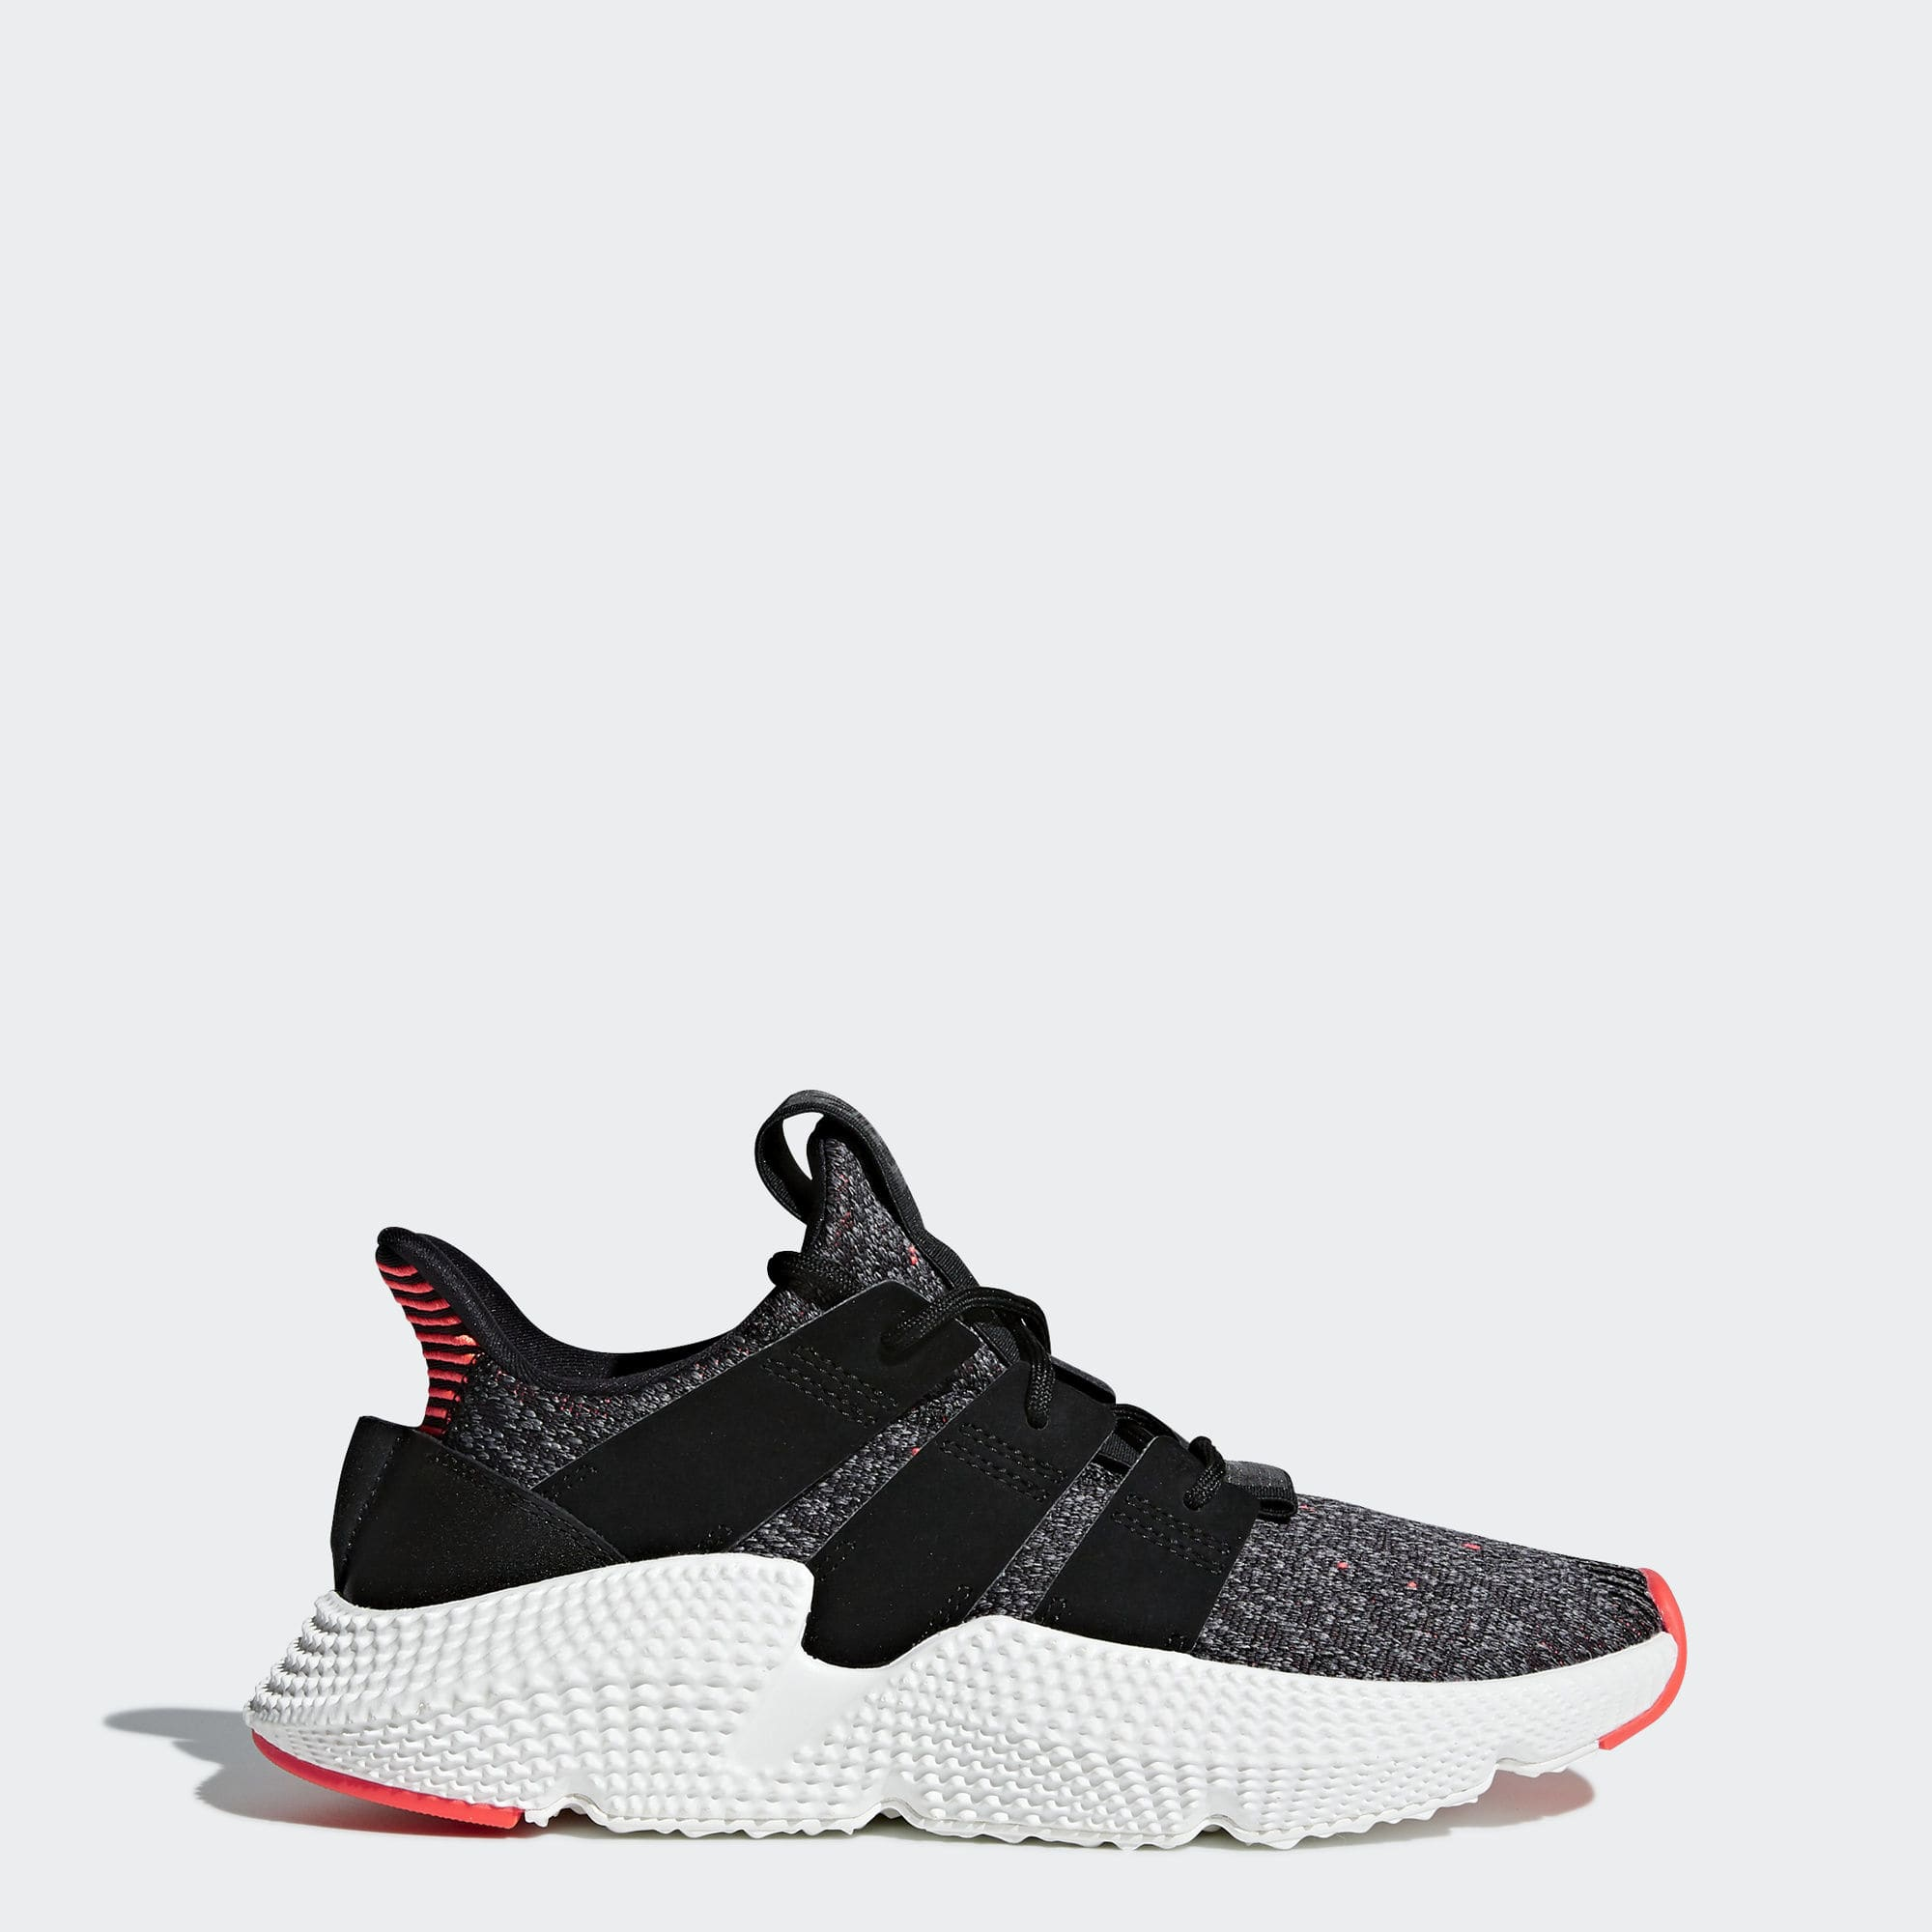 Adidas Prophere Sneakers Shoes 57% Off $51.99